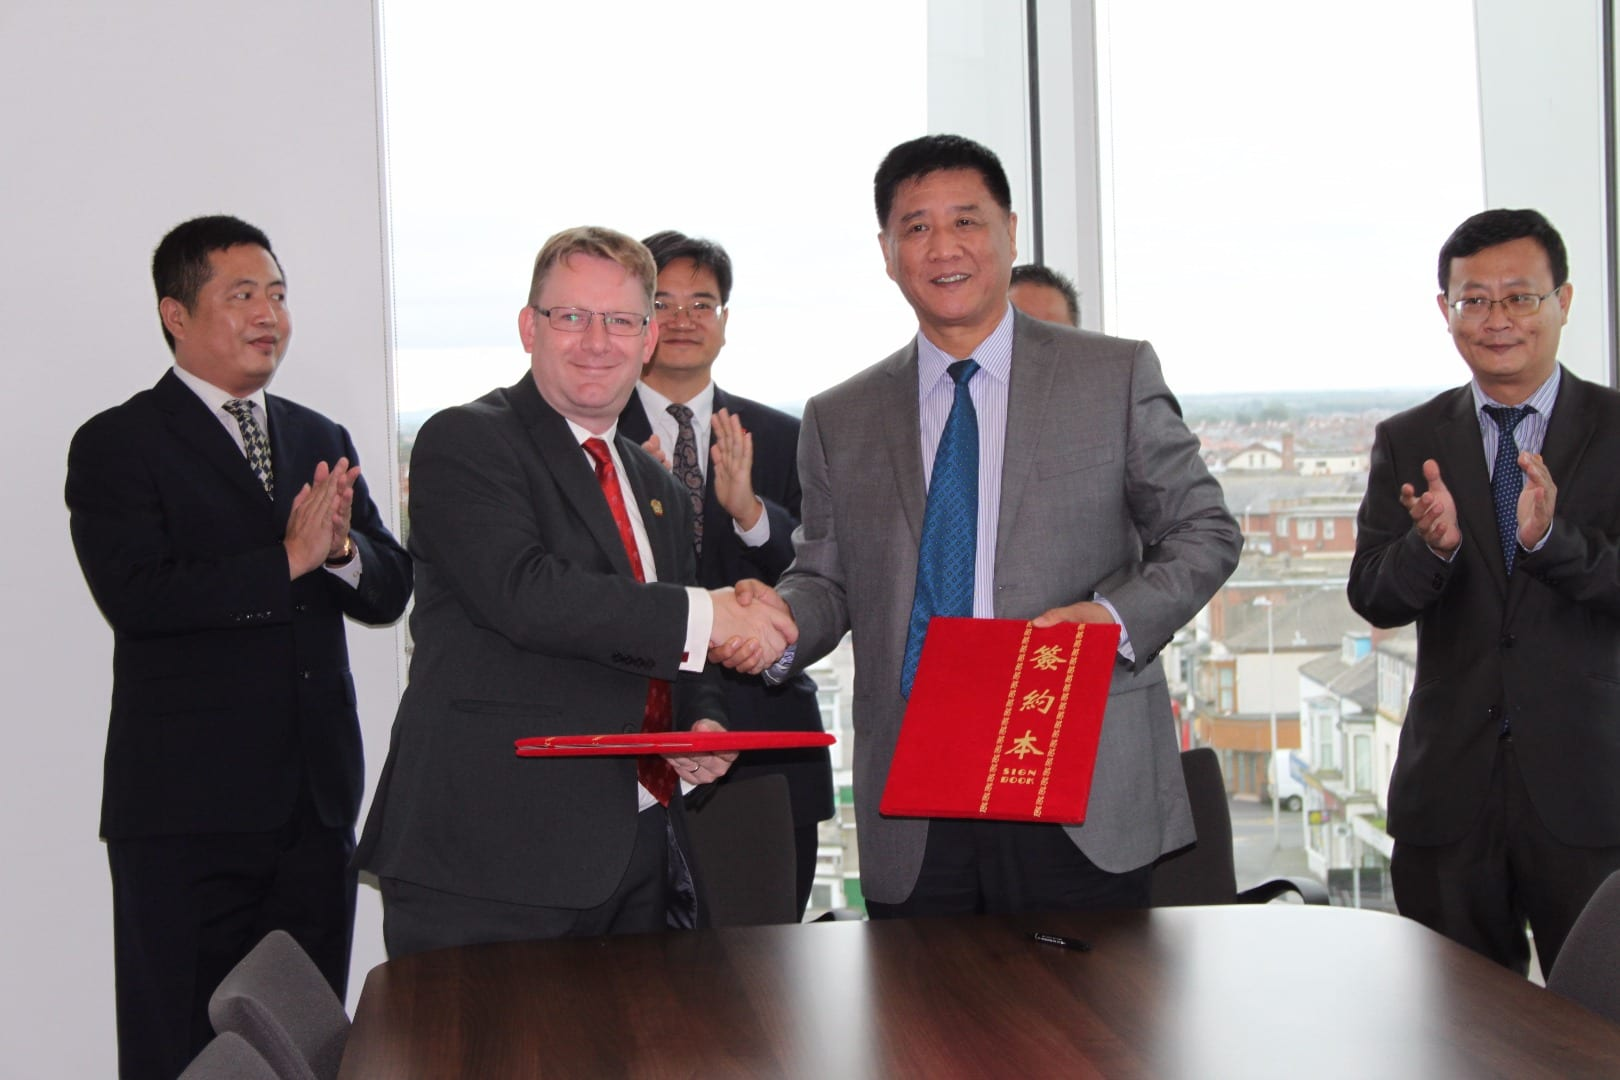 Blackpool signs the sister city agreement with Sanya